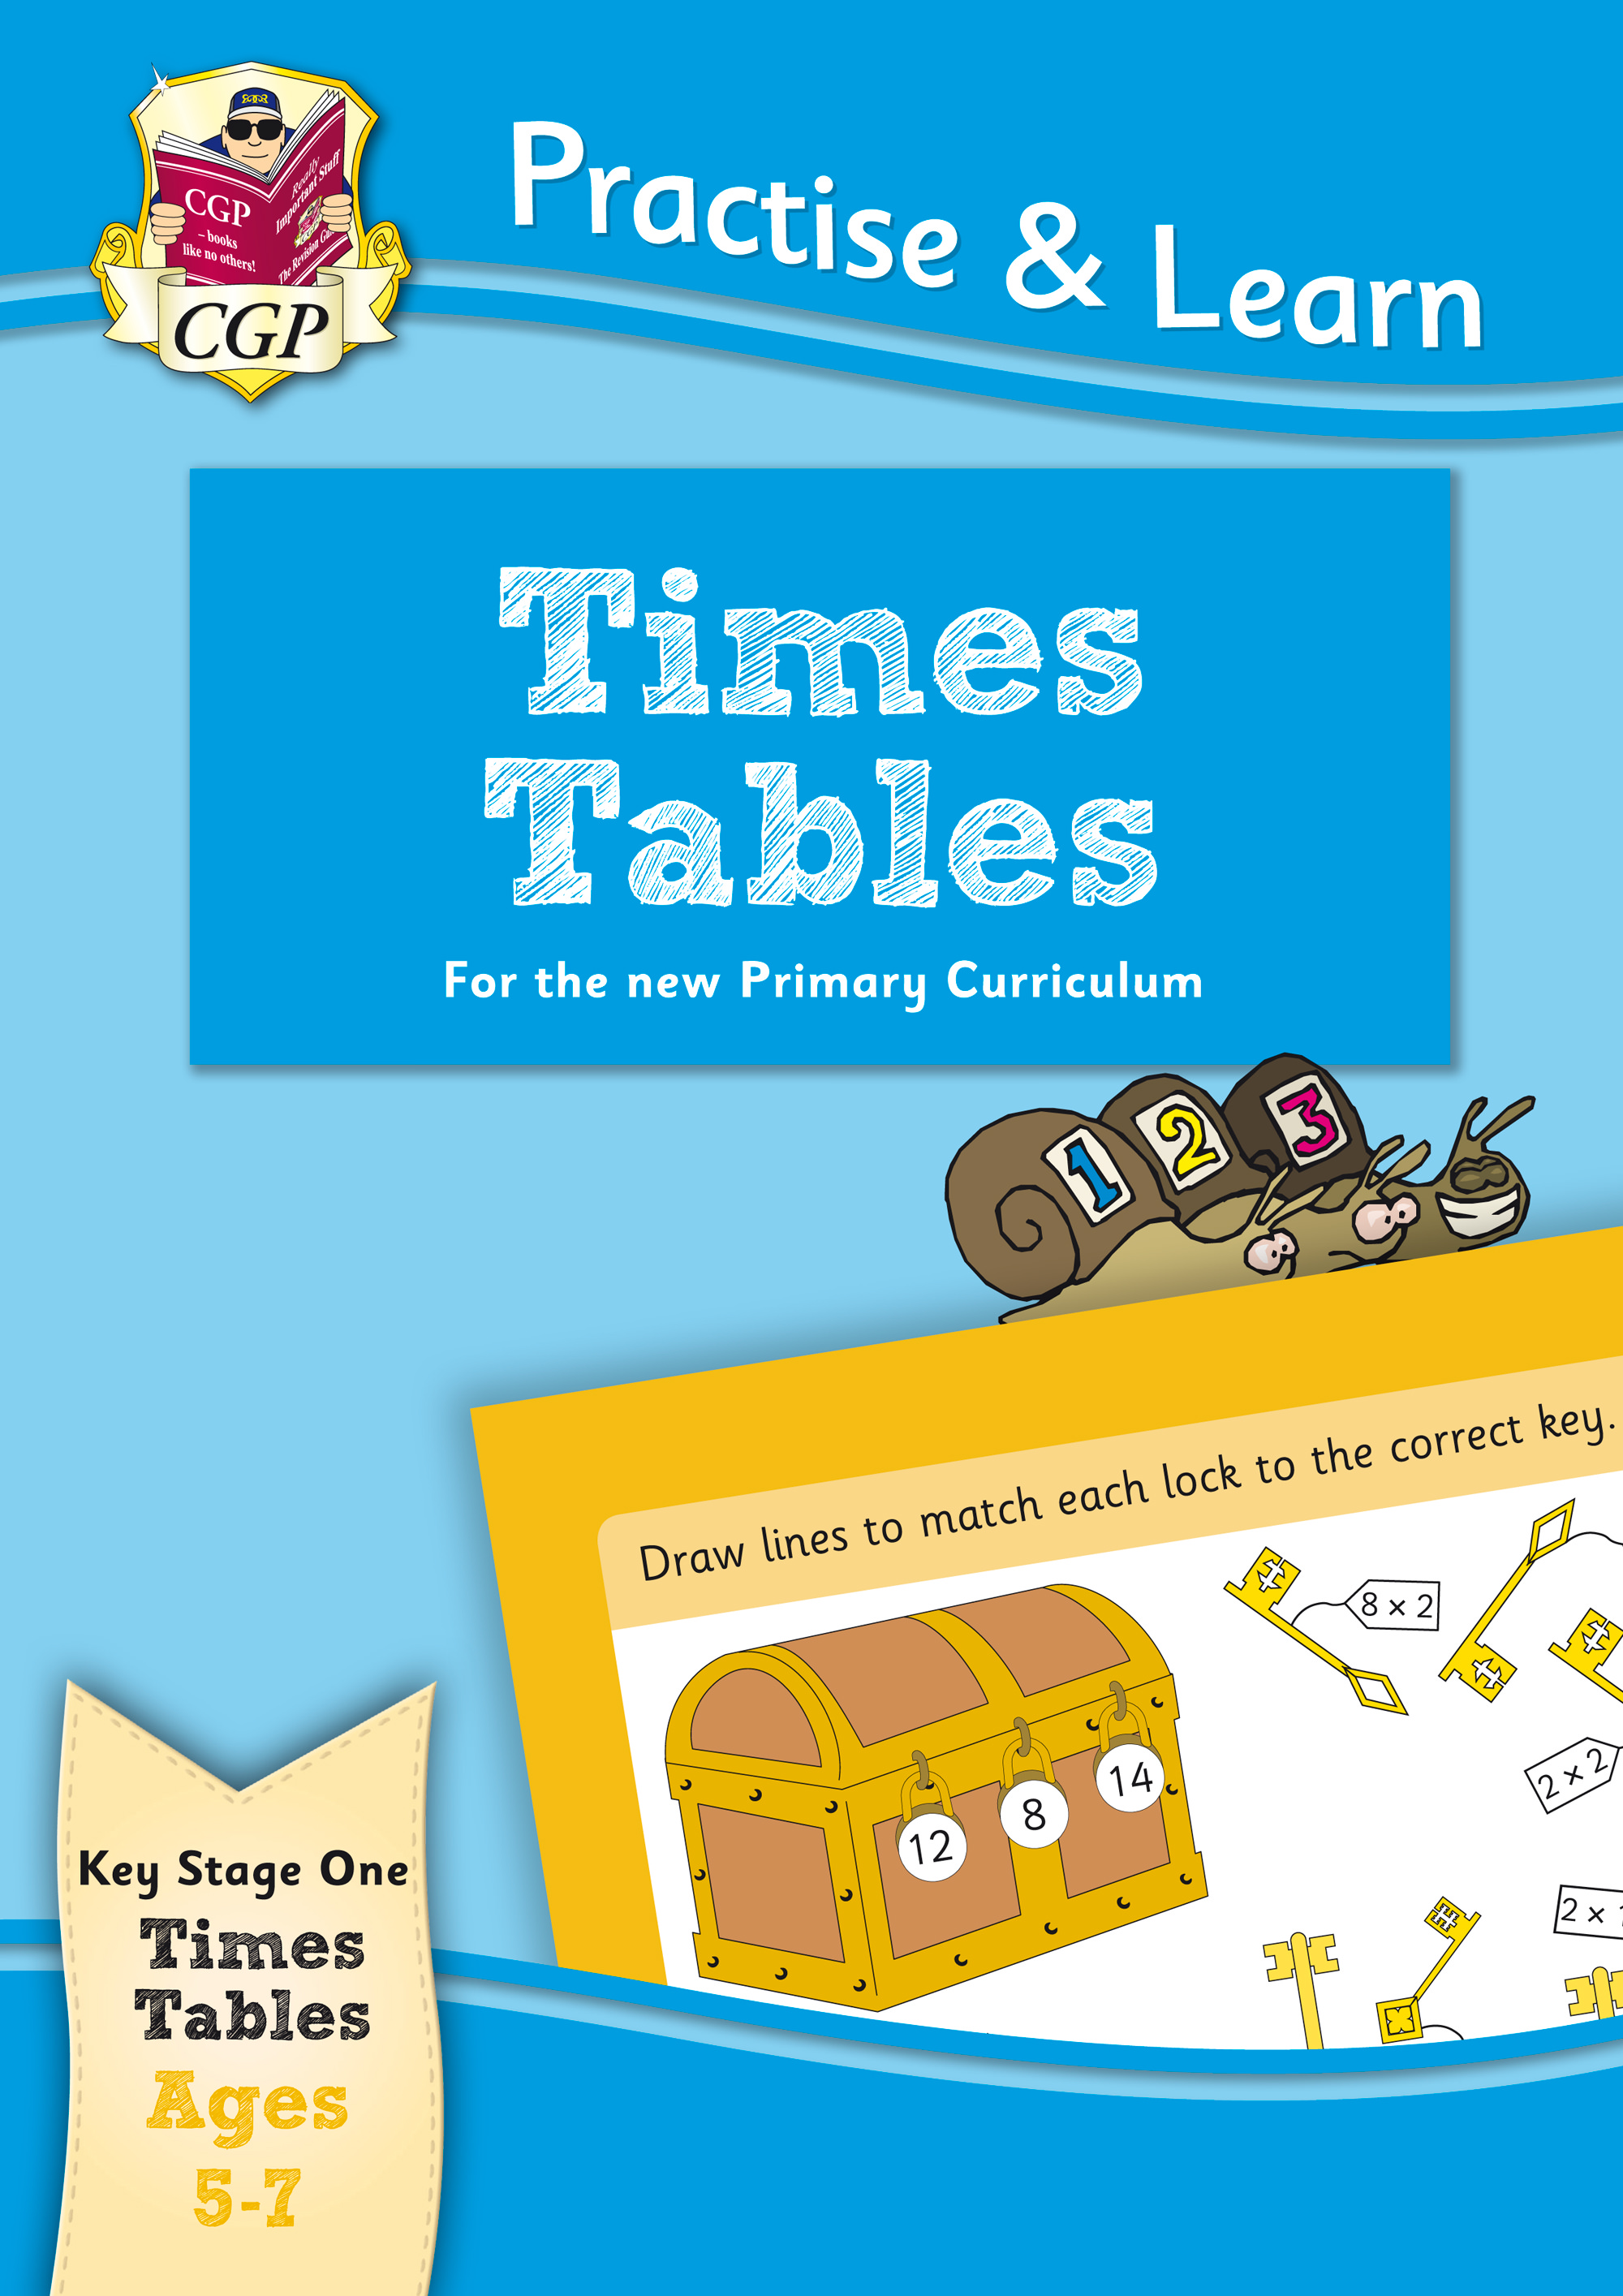 MPTT12 - New Practise & Learn: Times Tables for Ages 5-7